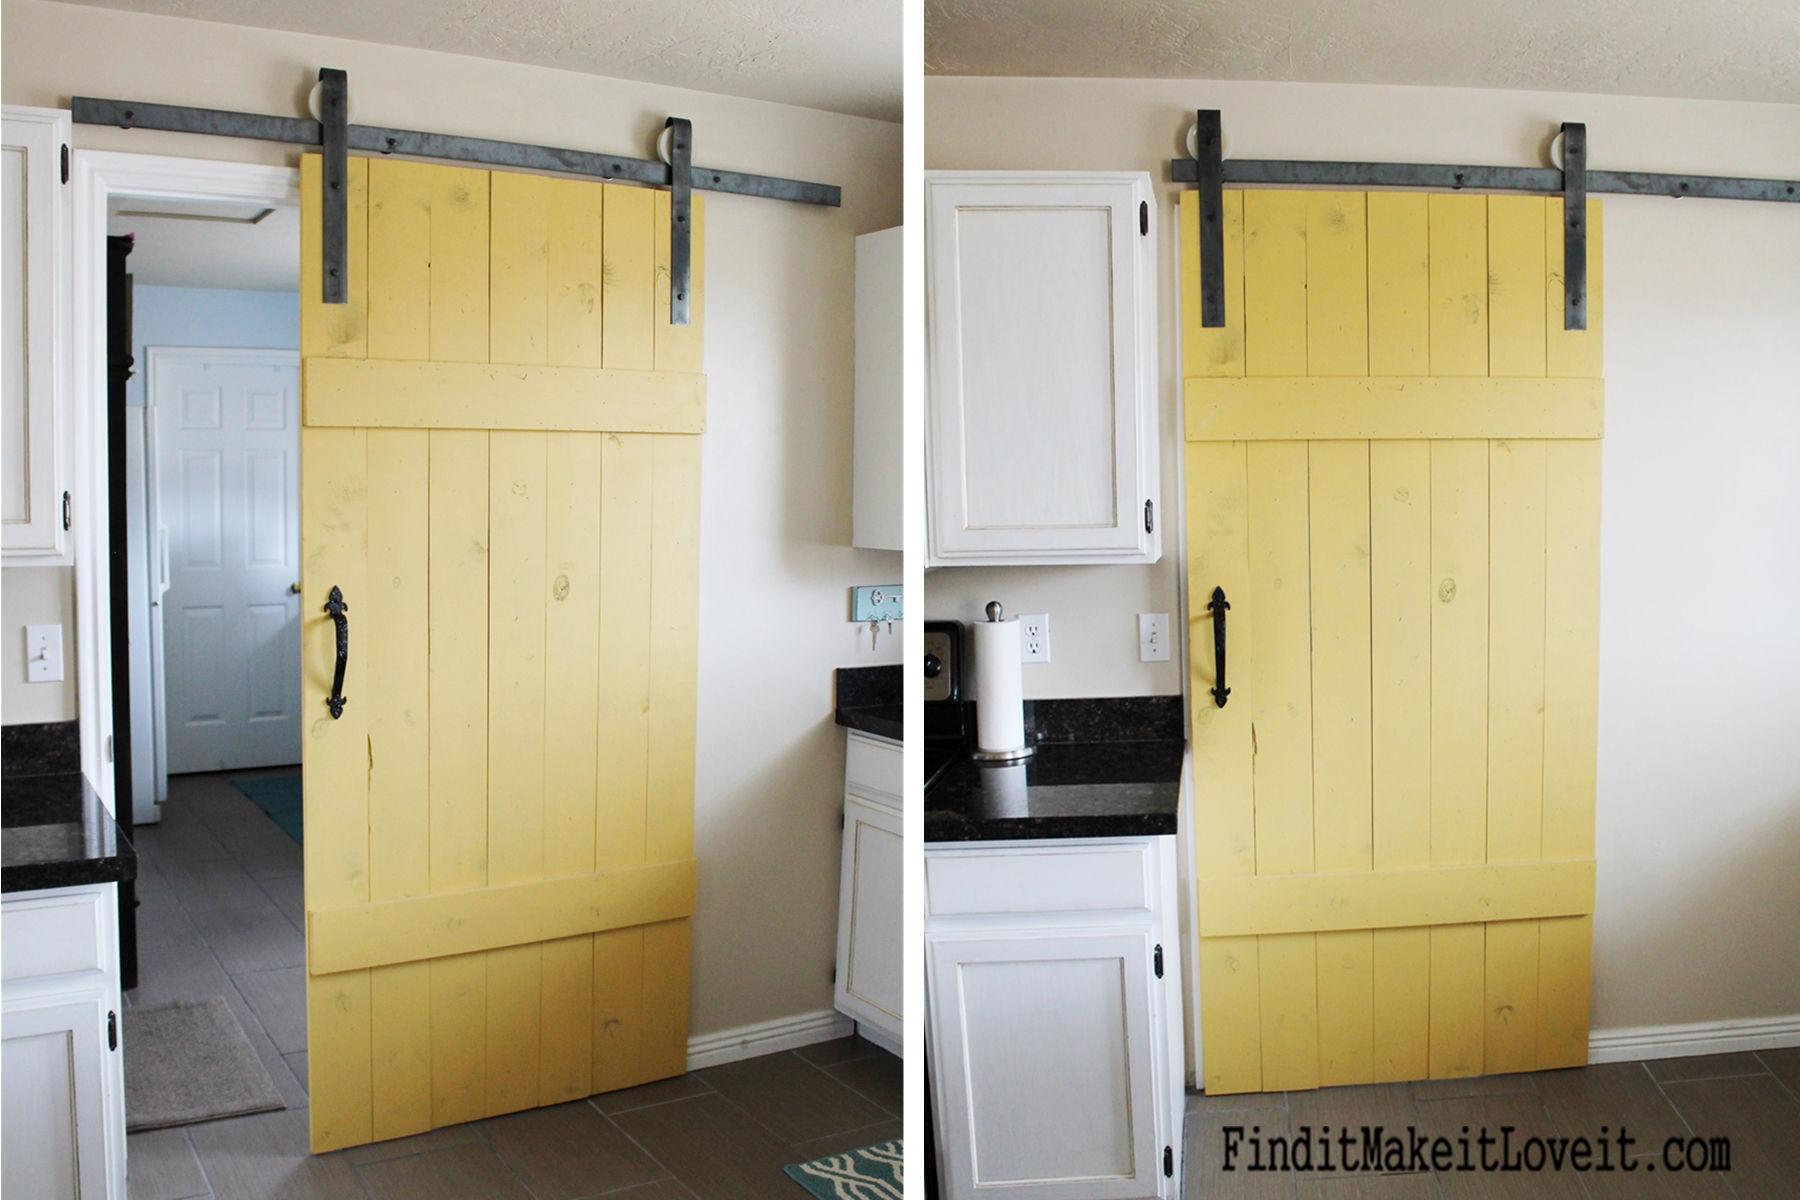 Diy Barn Door Find It Make It Love It